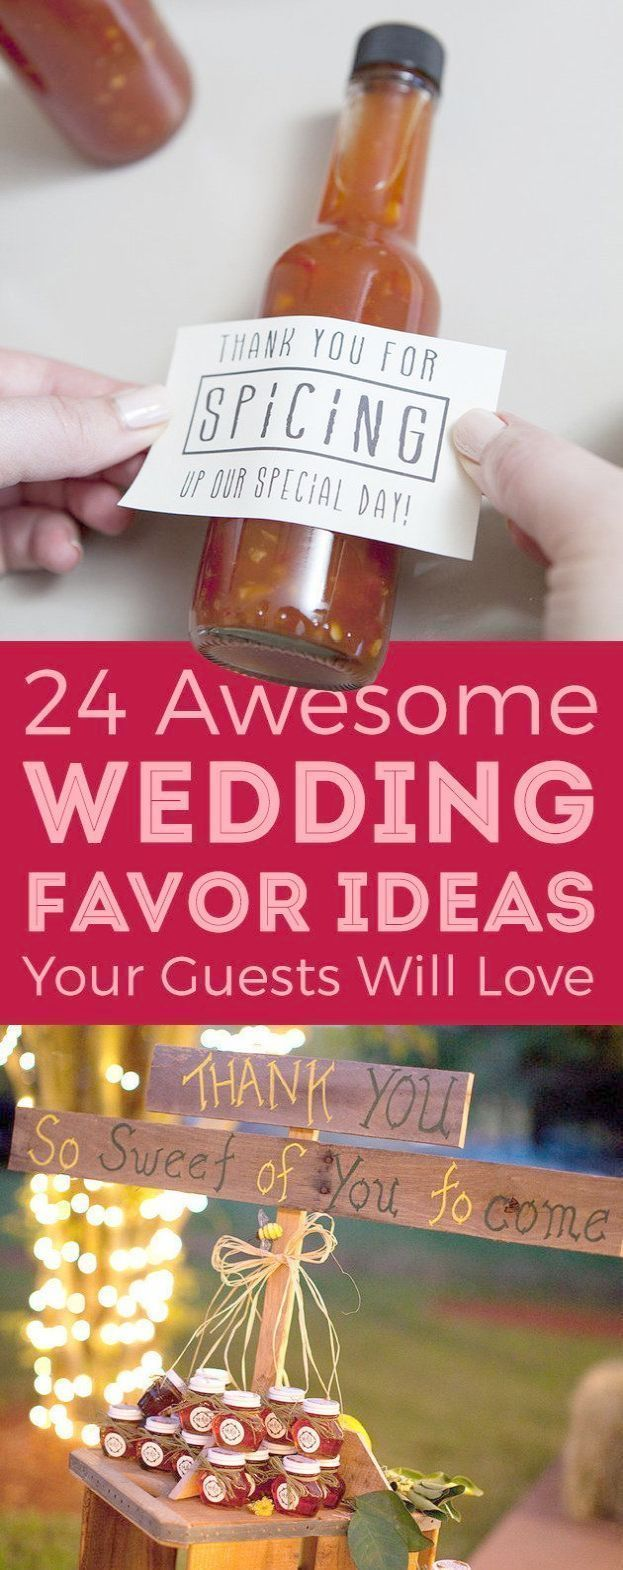 Unique wedding favor ideas for guests diy wedding favors edible